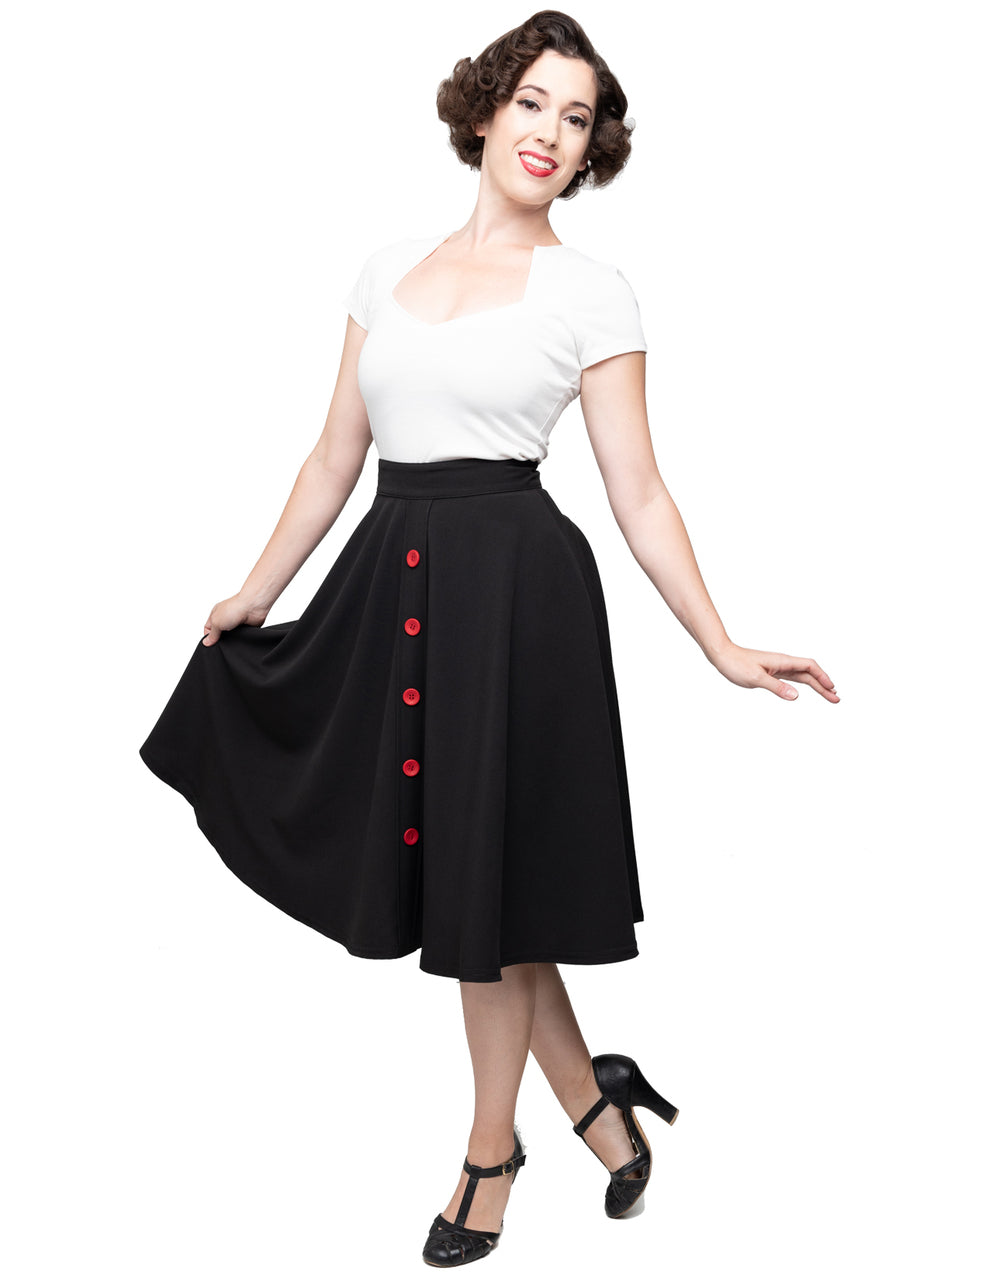 Button Thrills Skirt with Pockets in Black